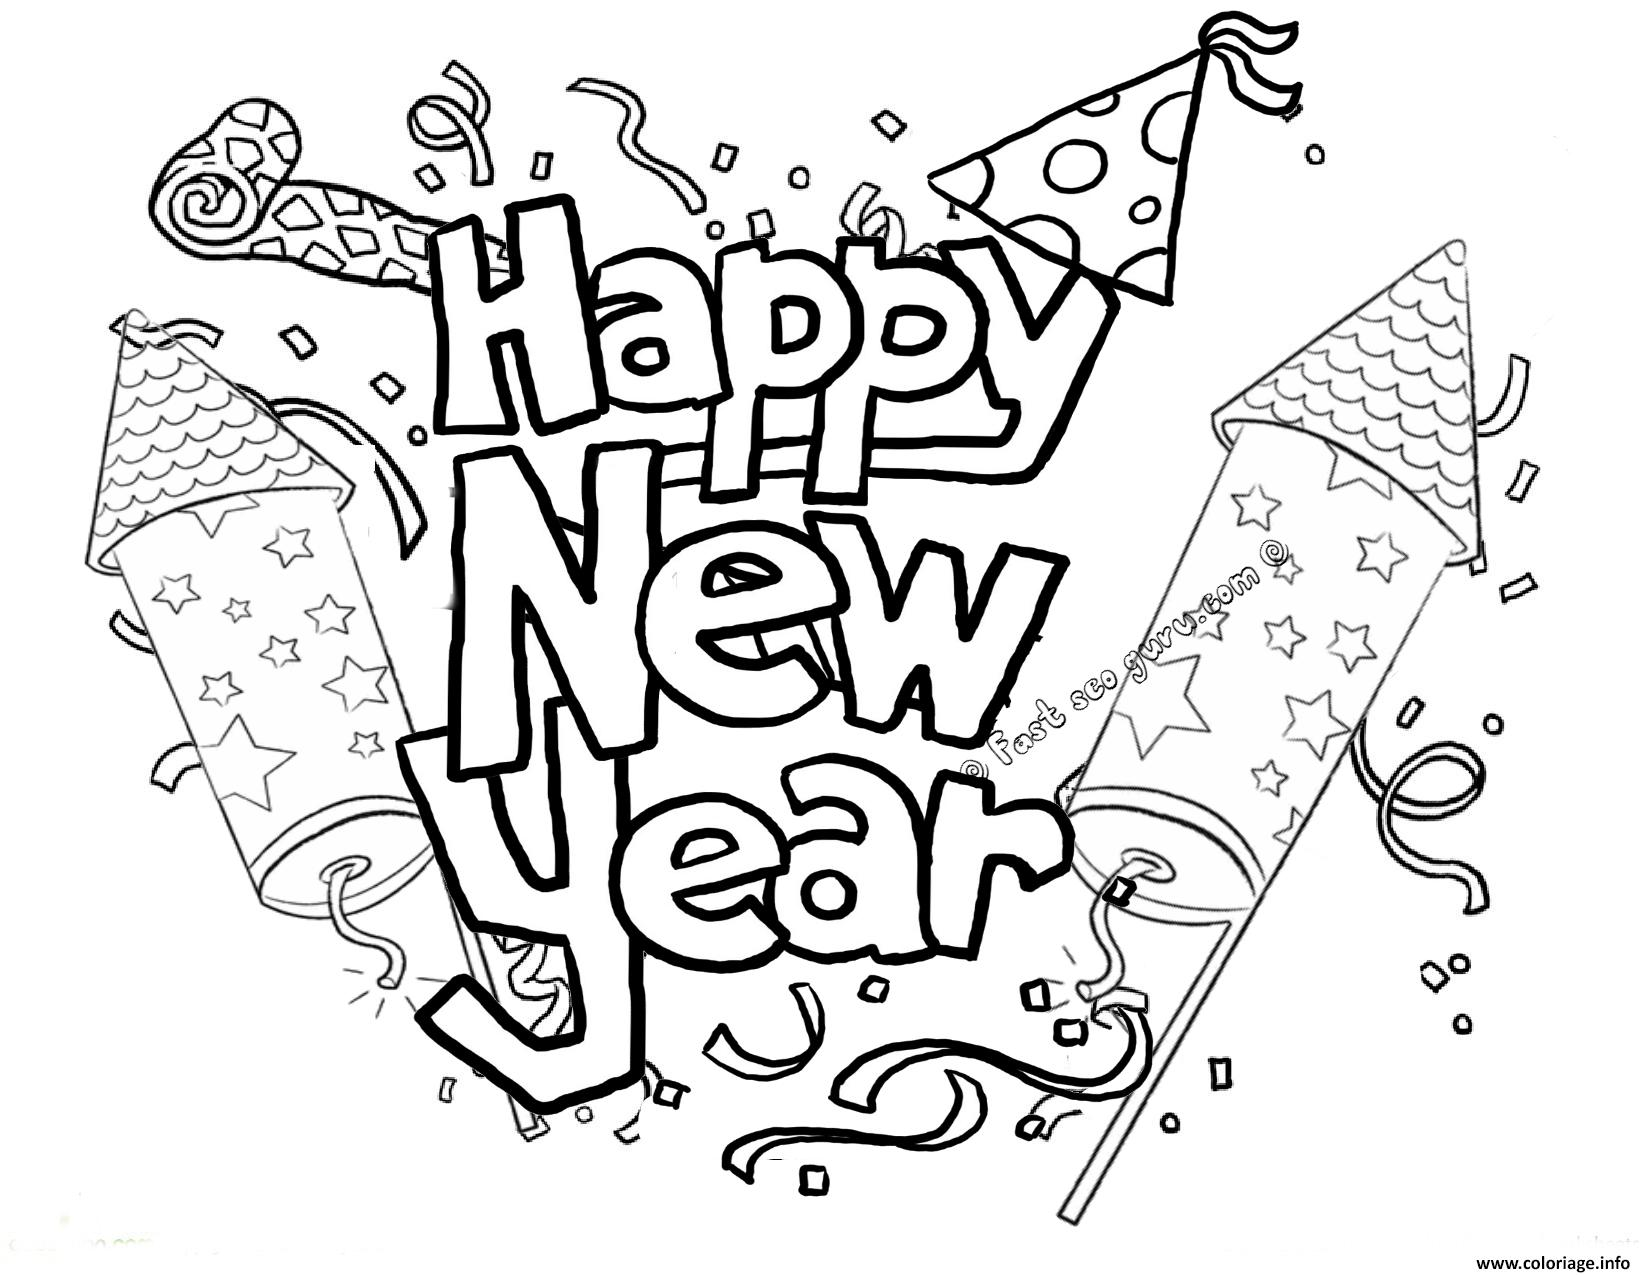 Coloriage Happy New Year Printable 2 Dessin à Imprimer